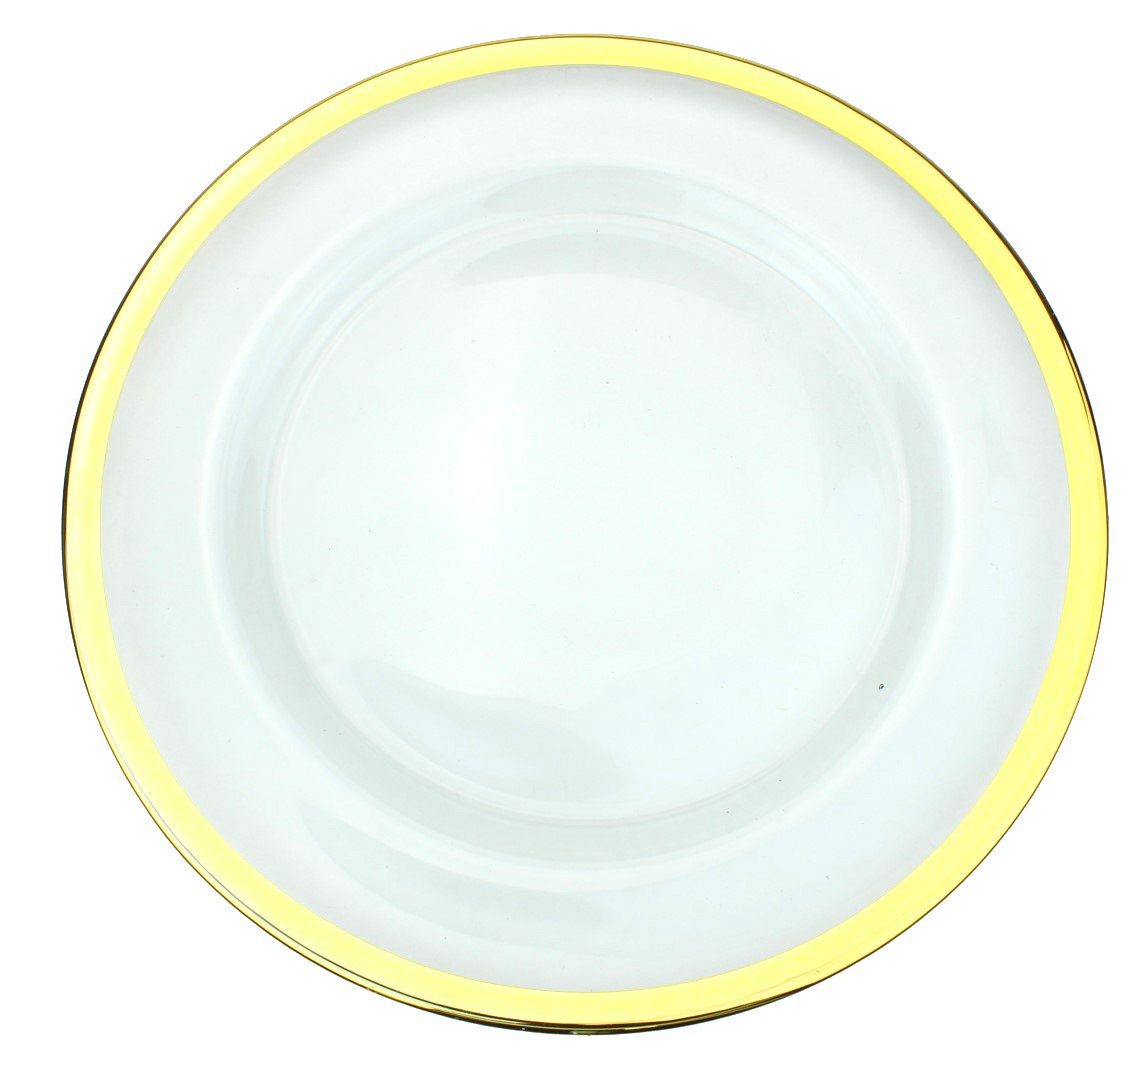 Clear Glass Charger 13 Inch Dinner Plate With Metallic Rim - Set of 4 - Gold Ms Lovely C120-25-1-gold